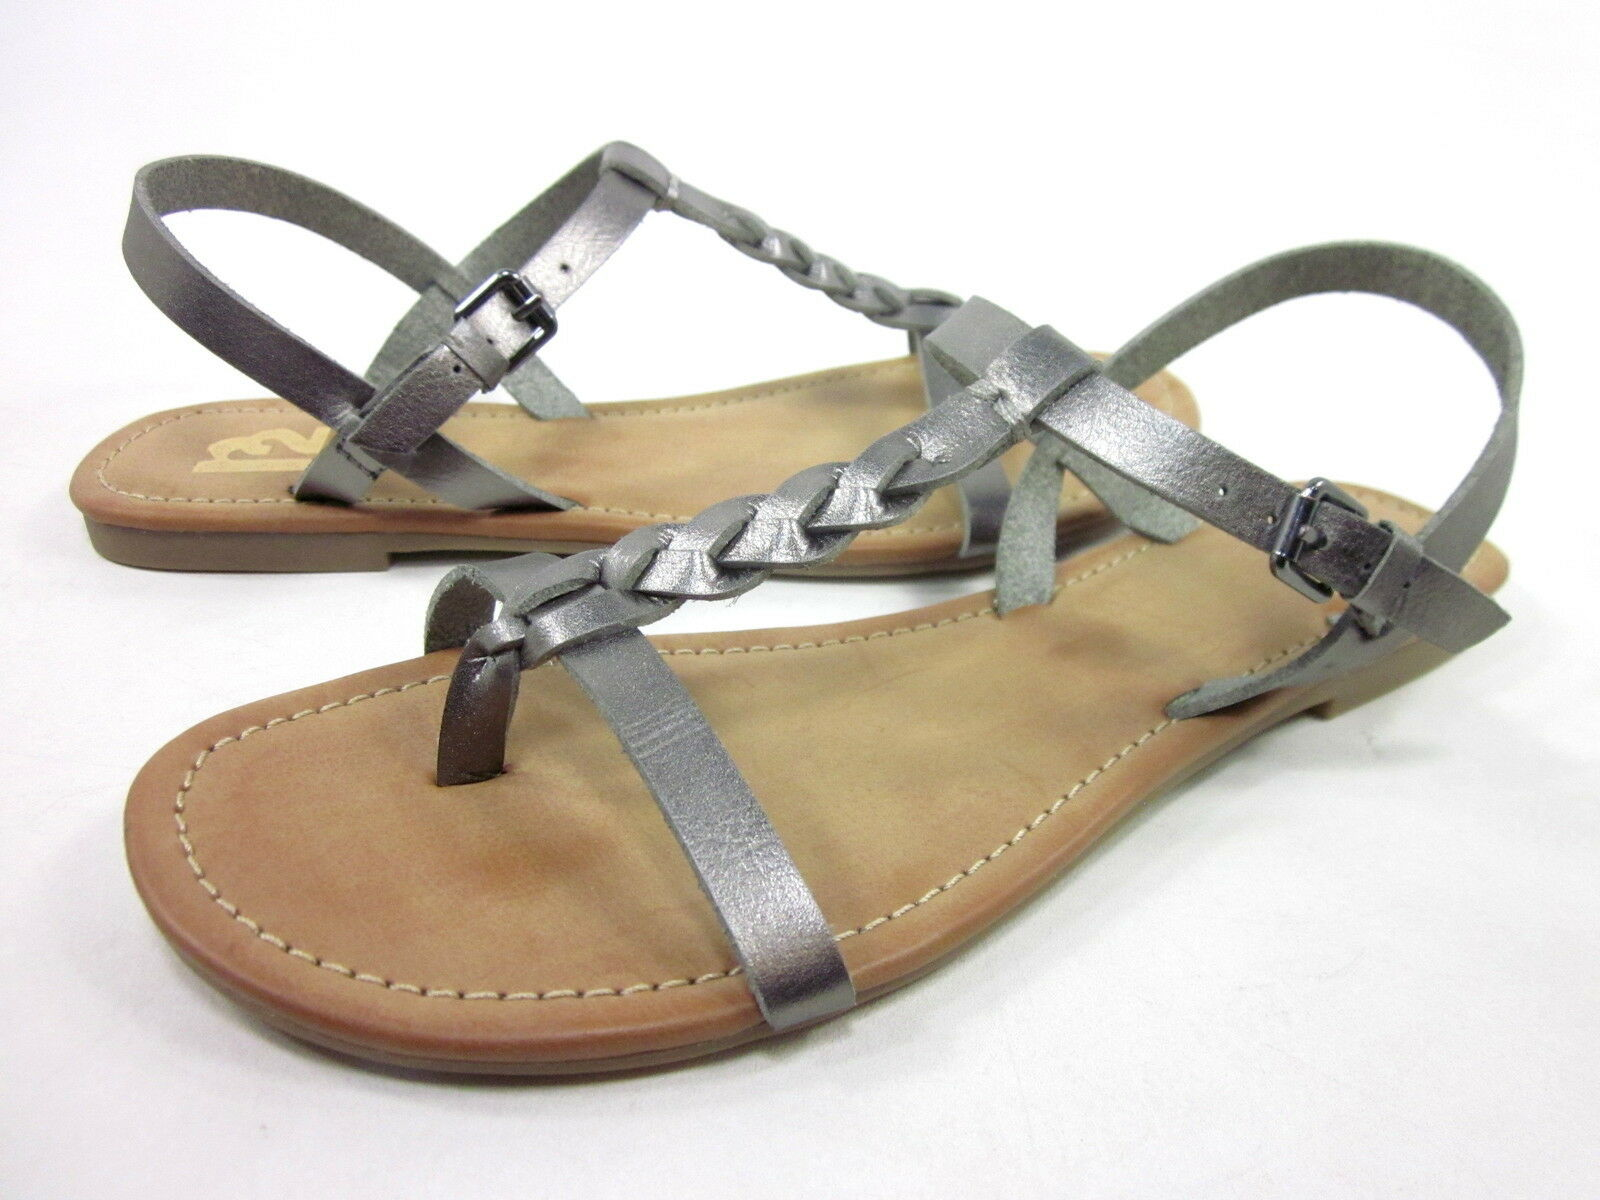 R2 FOOTWEAR WOMEN'S CAYMAN 8 T-STRAP THONG FASHION SANDALS,PEWTER,US SIZE 8 CAYMAN MEDIUM 04ebb3